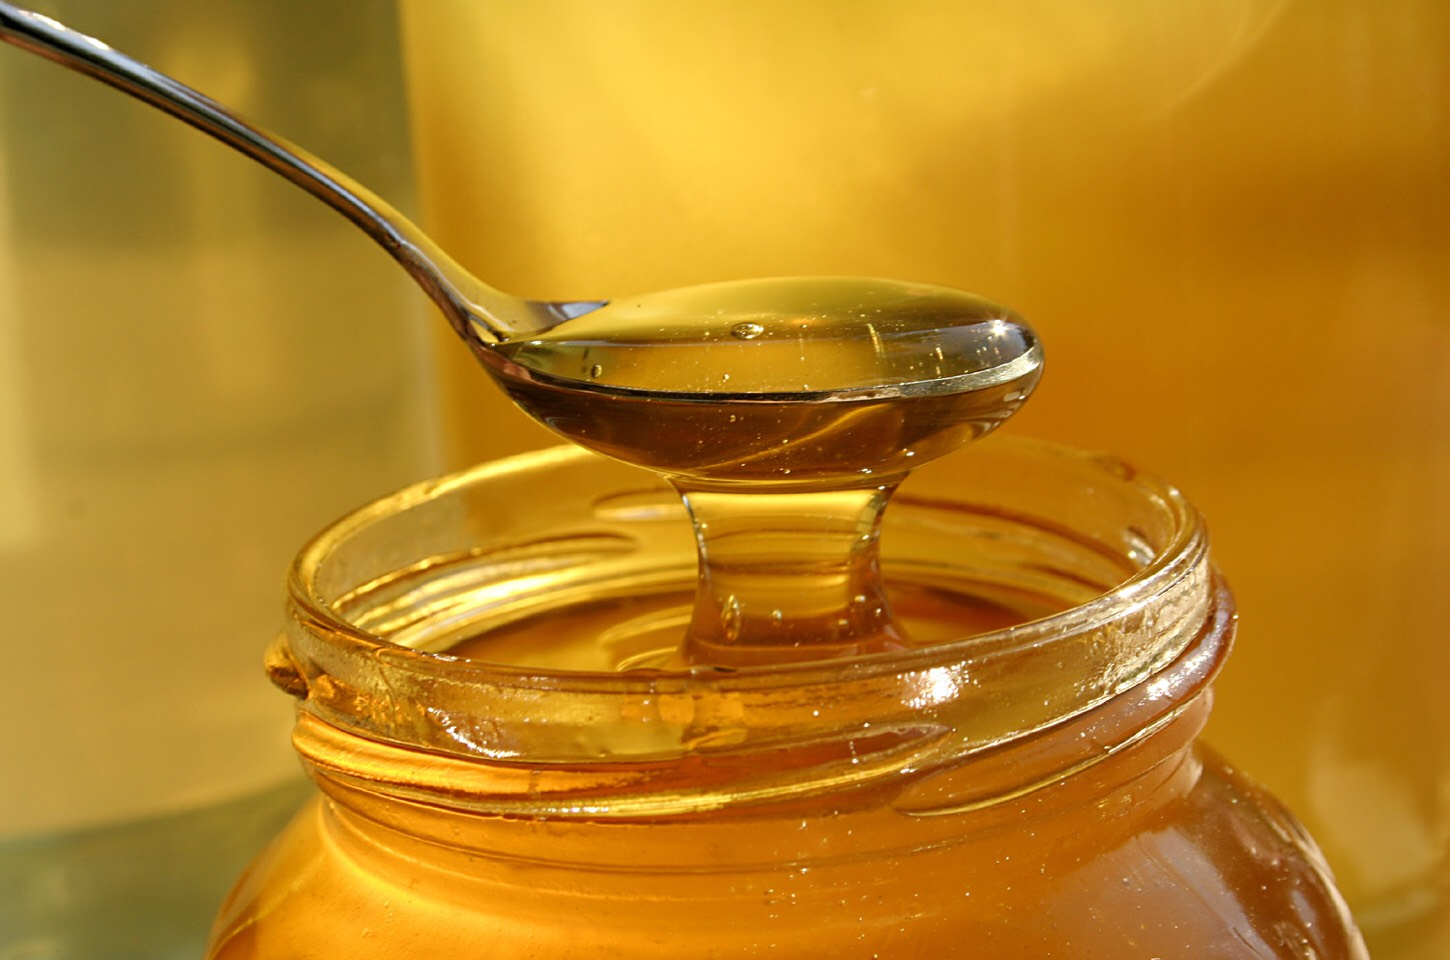 You'll need 1 tablespoon of honey.( for its antibacterial and antioxidant properties.